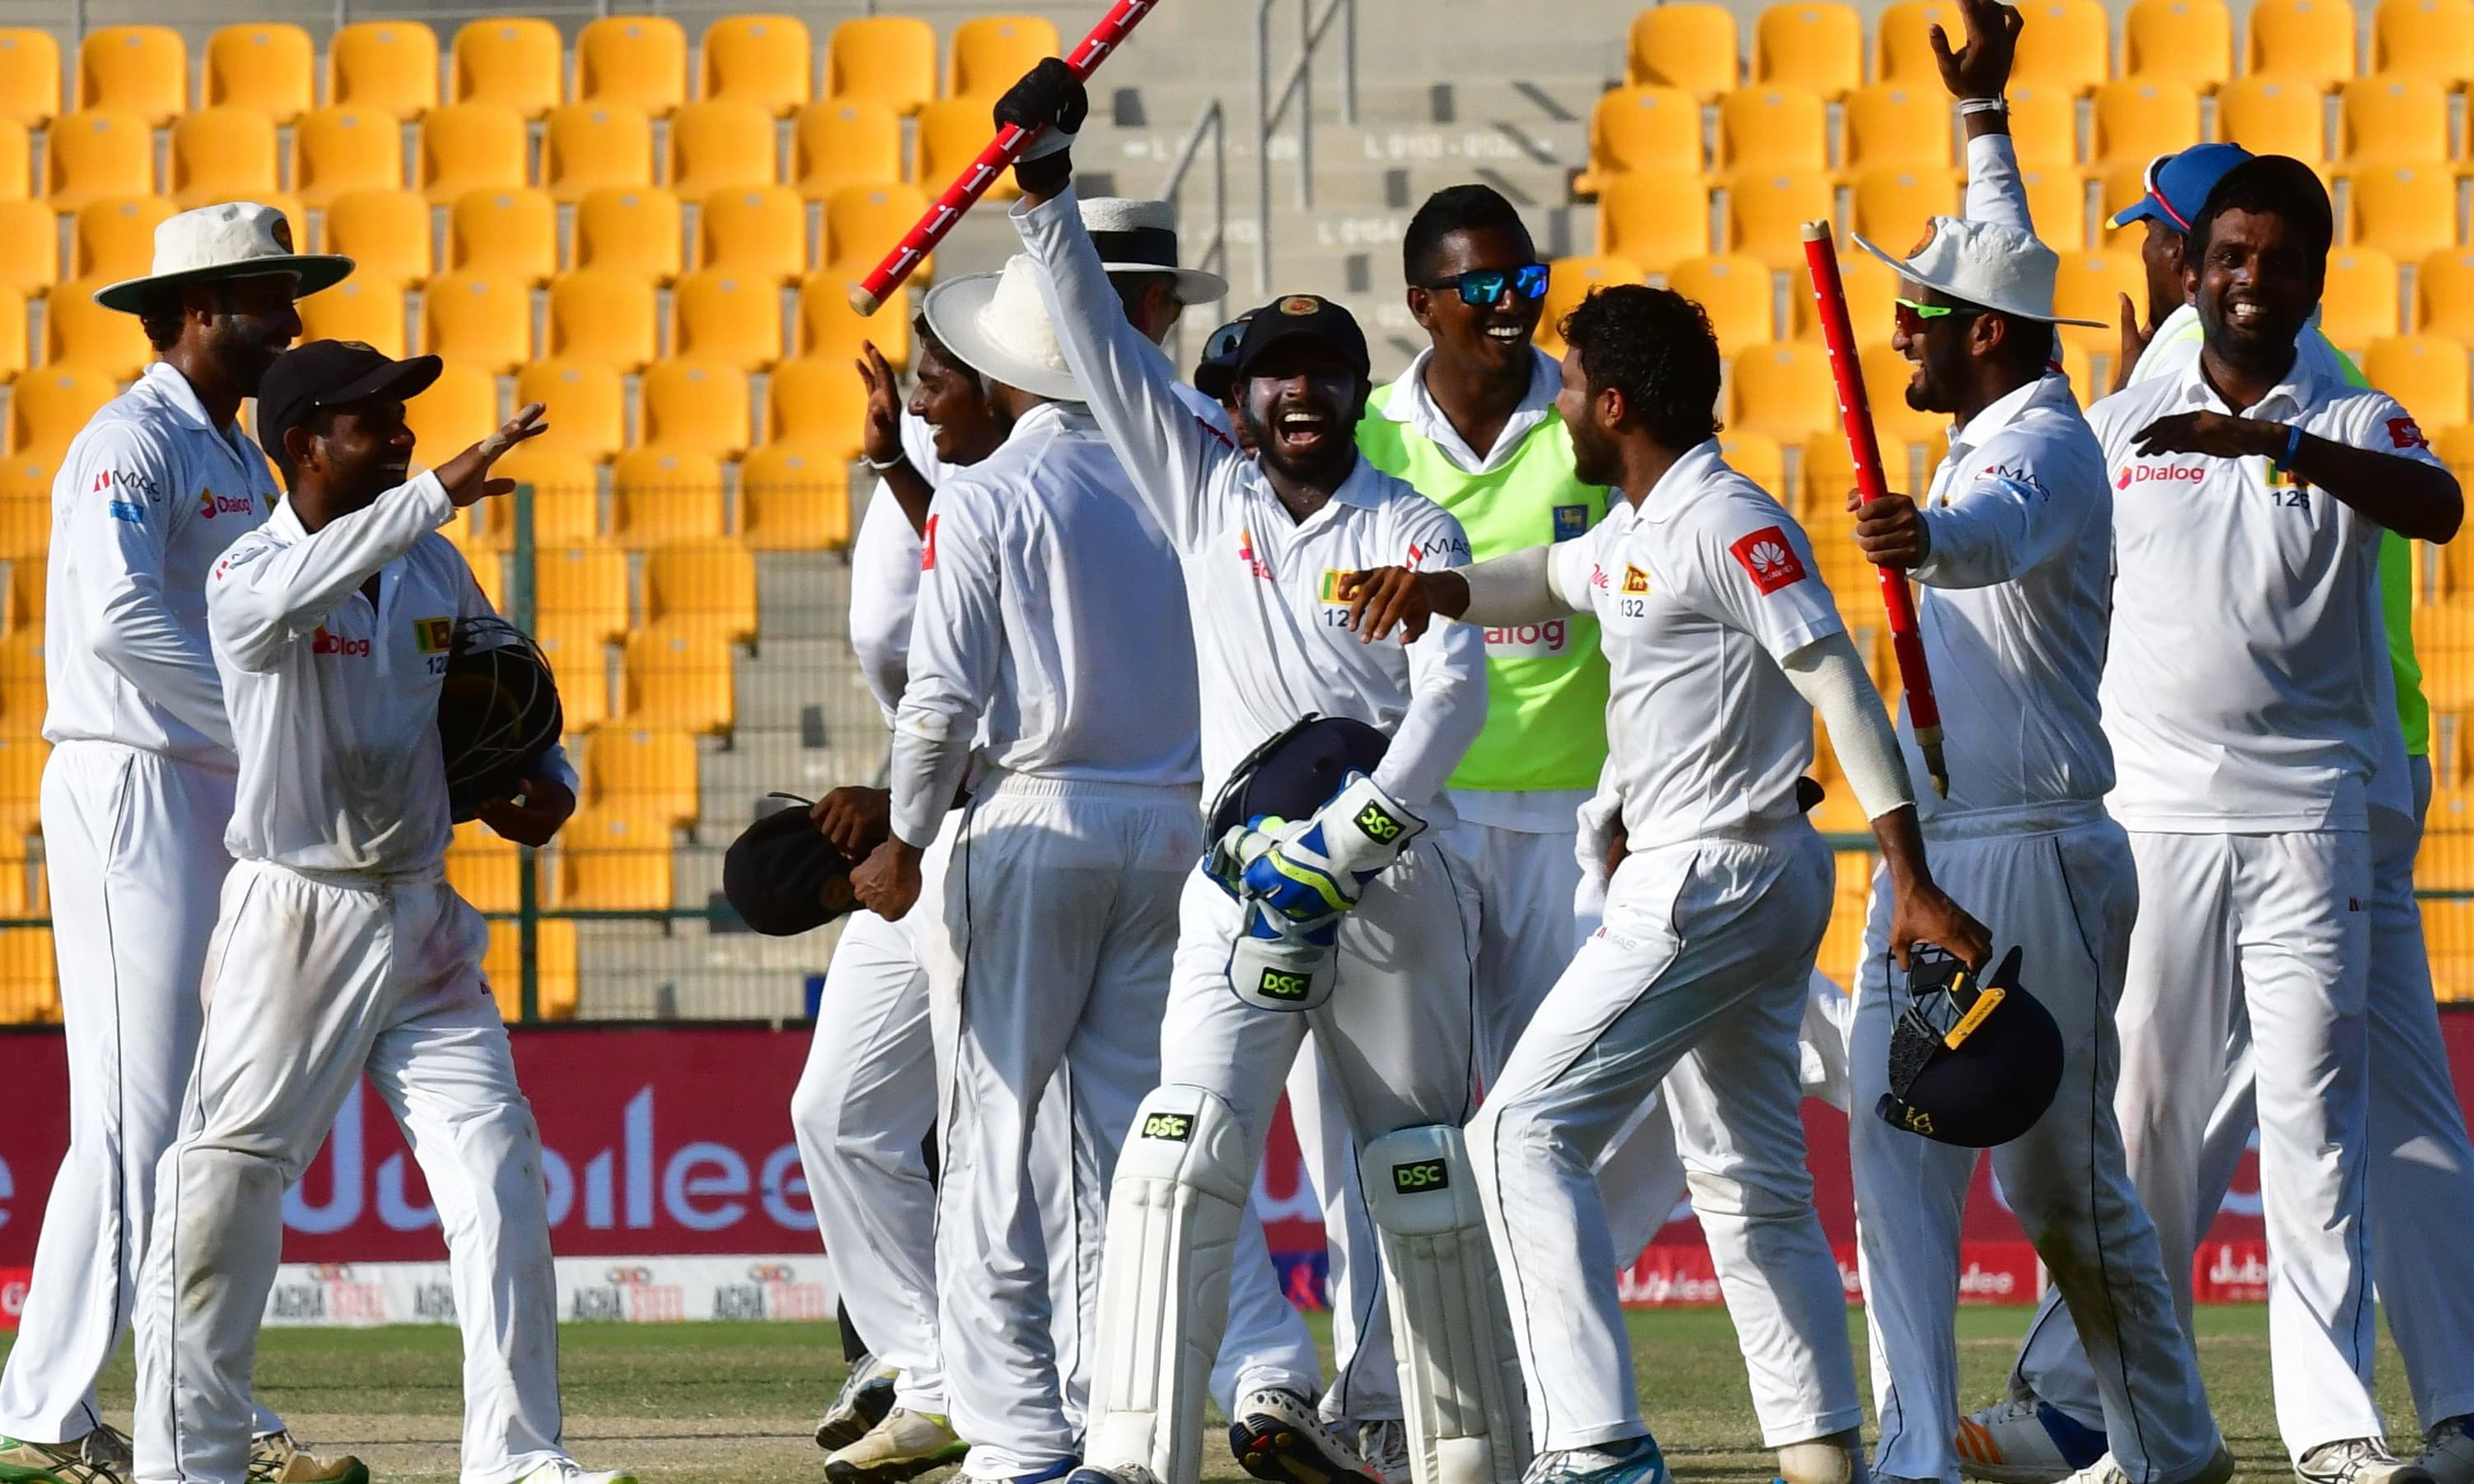 Sri Lankan cricketers celebrate after victory on the fifth day of the first Test cricket match between Sri Lanka and Pakistan at Sheikh Zayed Stadium in Abu Dhabi on October 2, 2017. —AFP